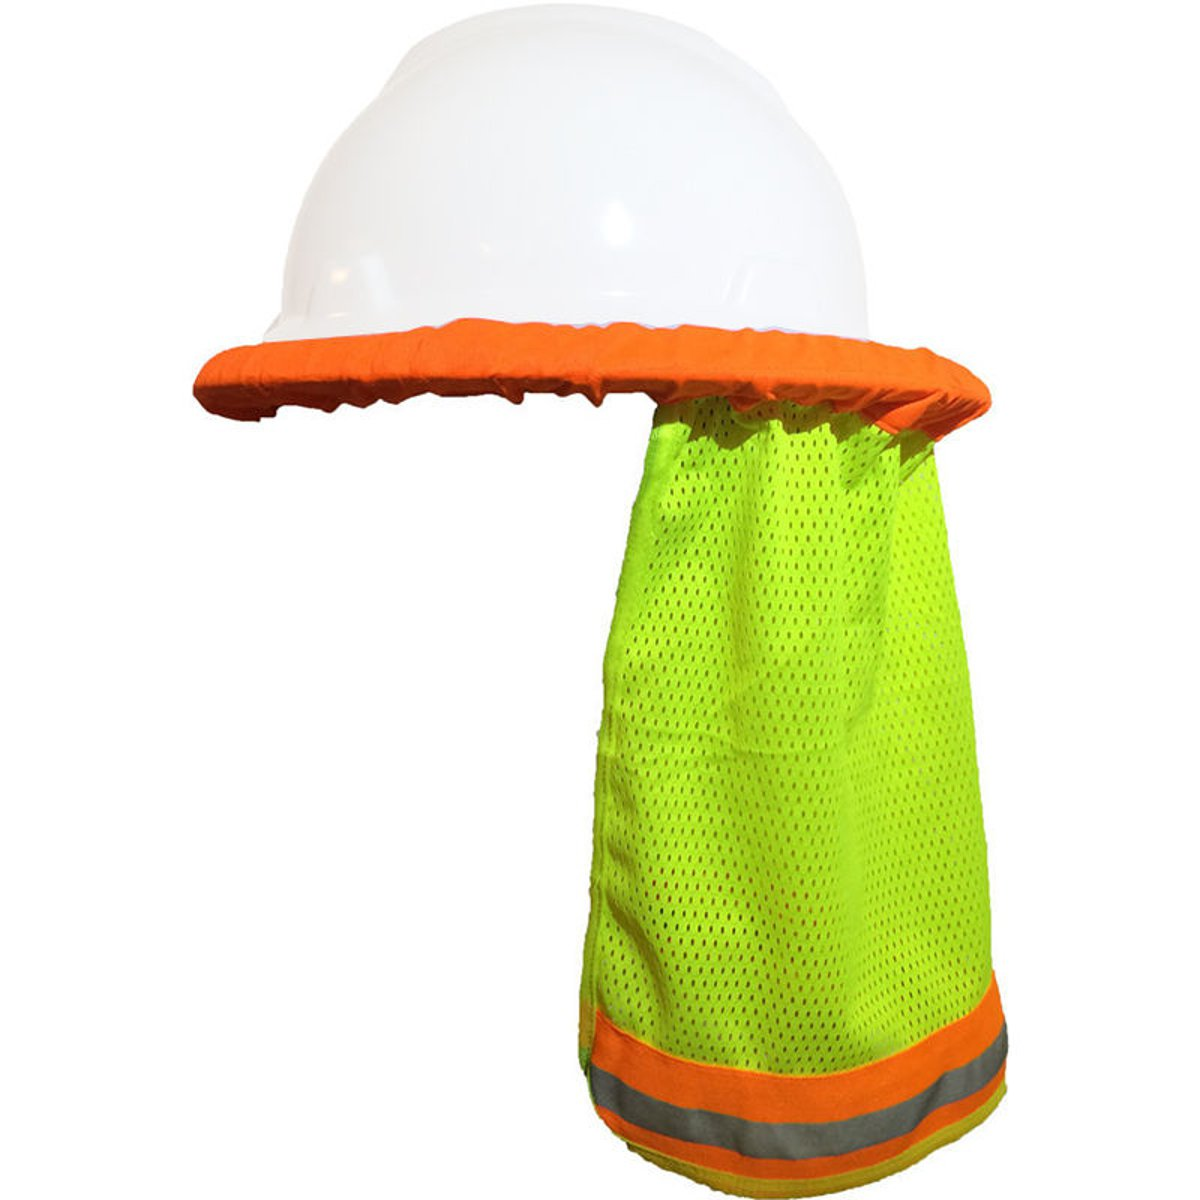 Safurance Reflective Stripe Neck Shield Safety Hard Hat Cap Sun Shade Protective Helmets Workplace Safety